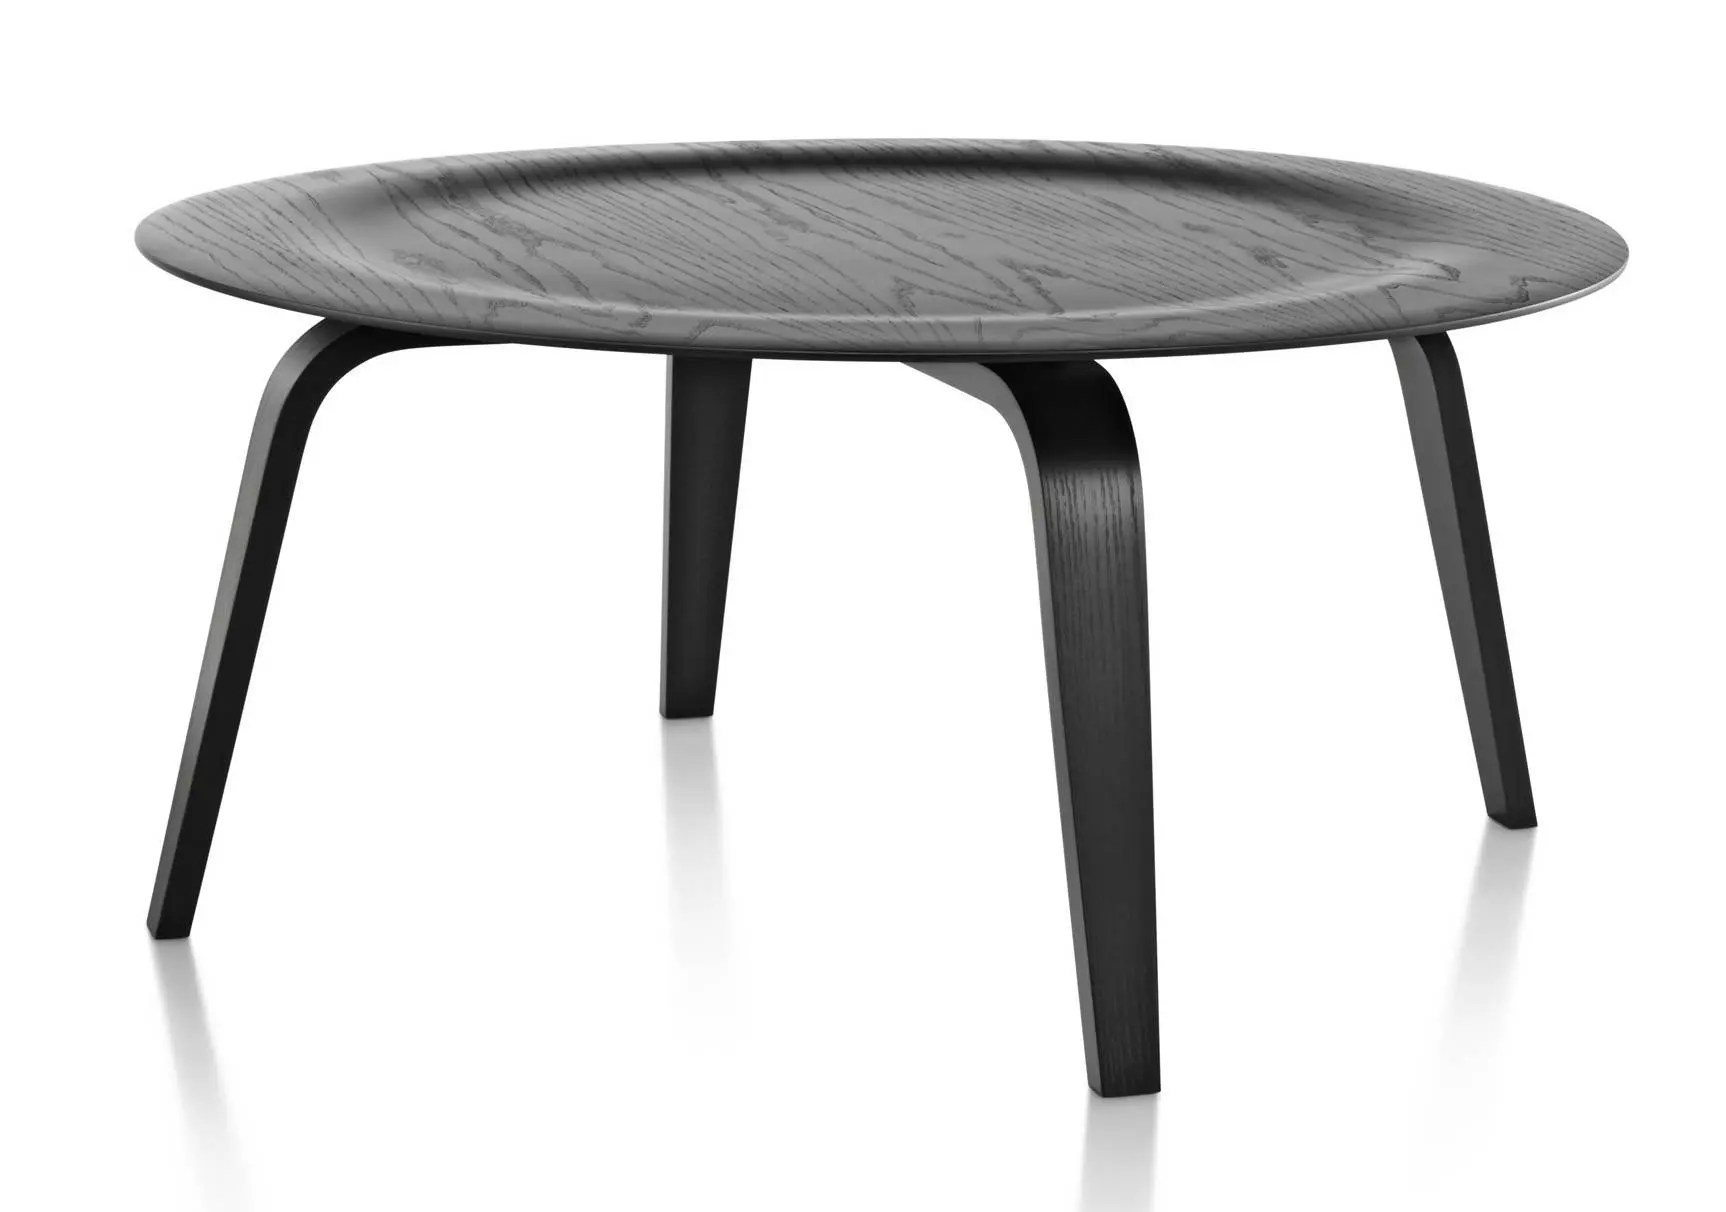 Herman Miller Eames Molded Plywood Coffee Table Wood Base